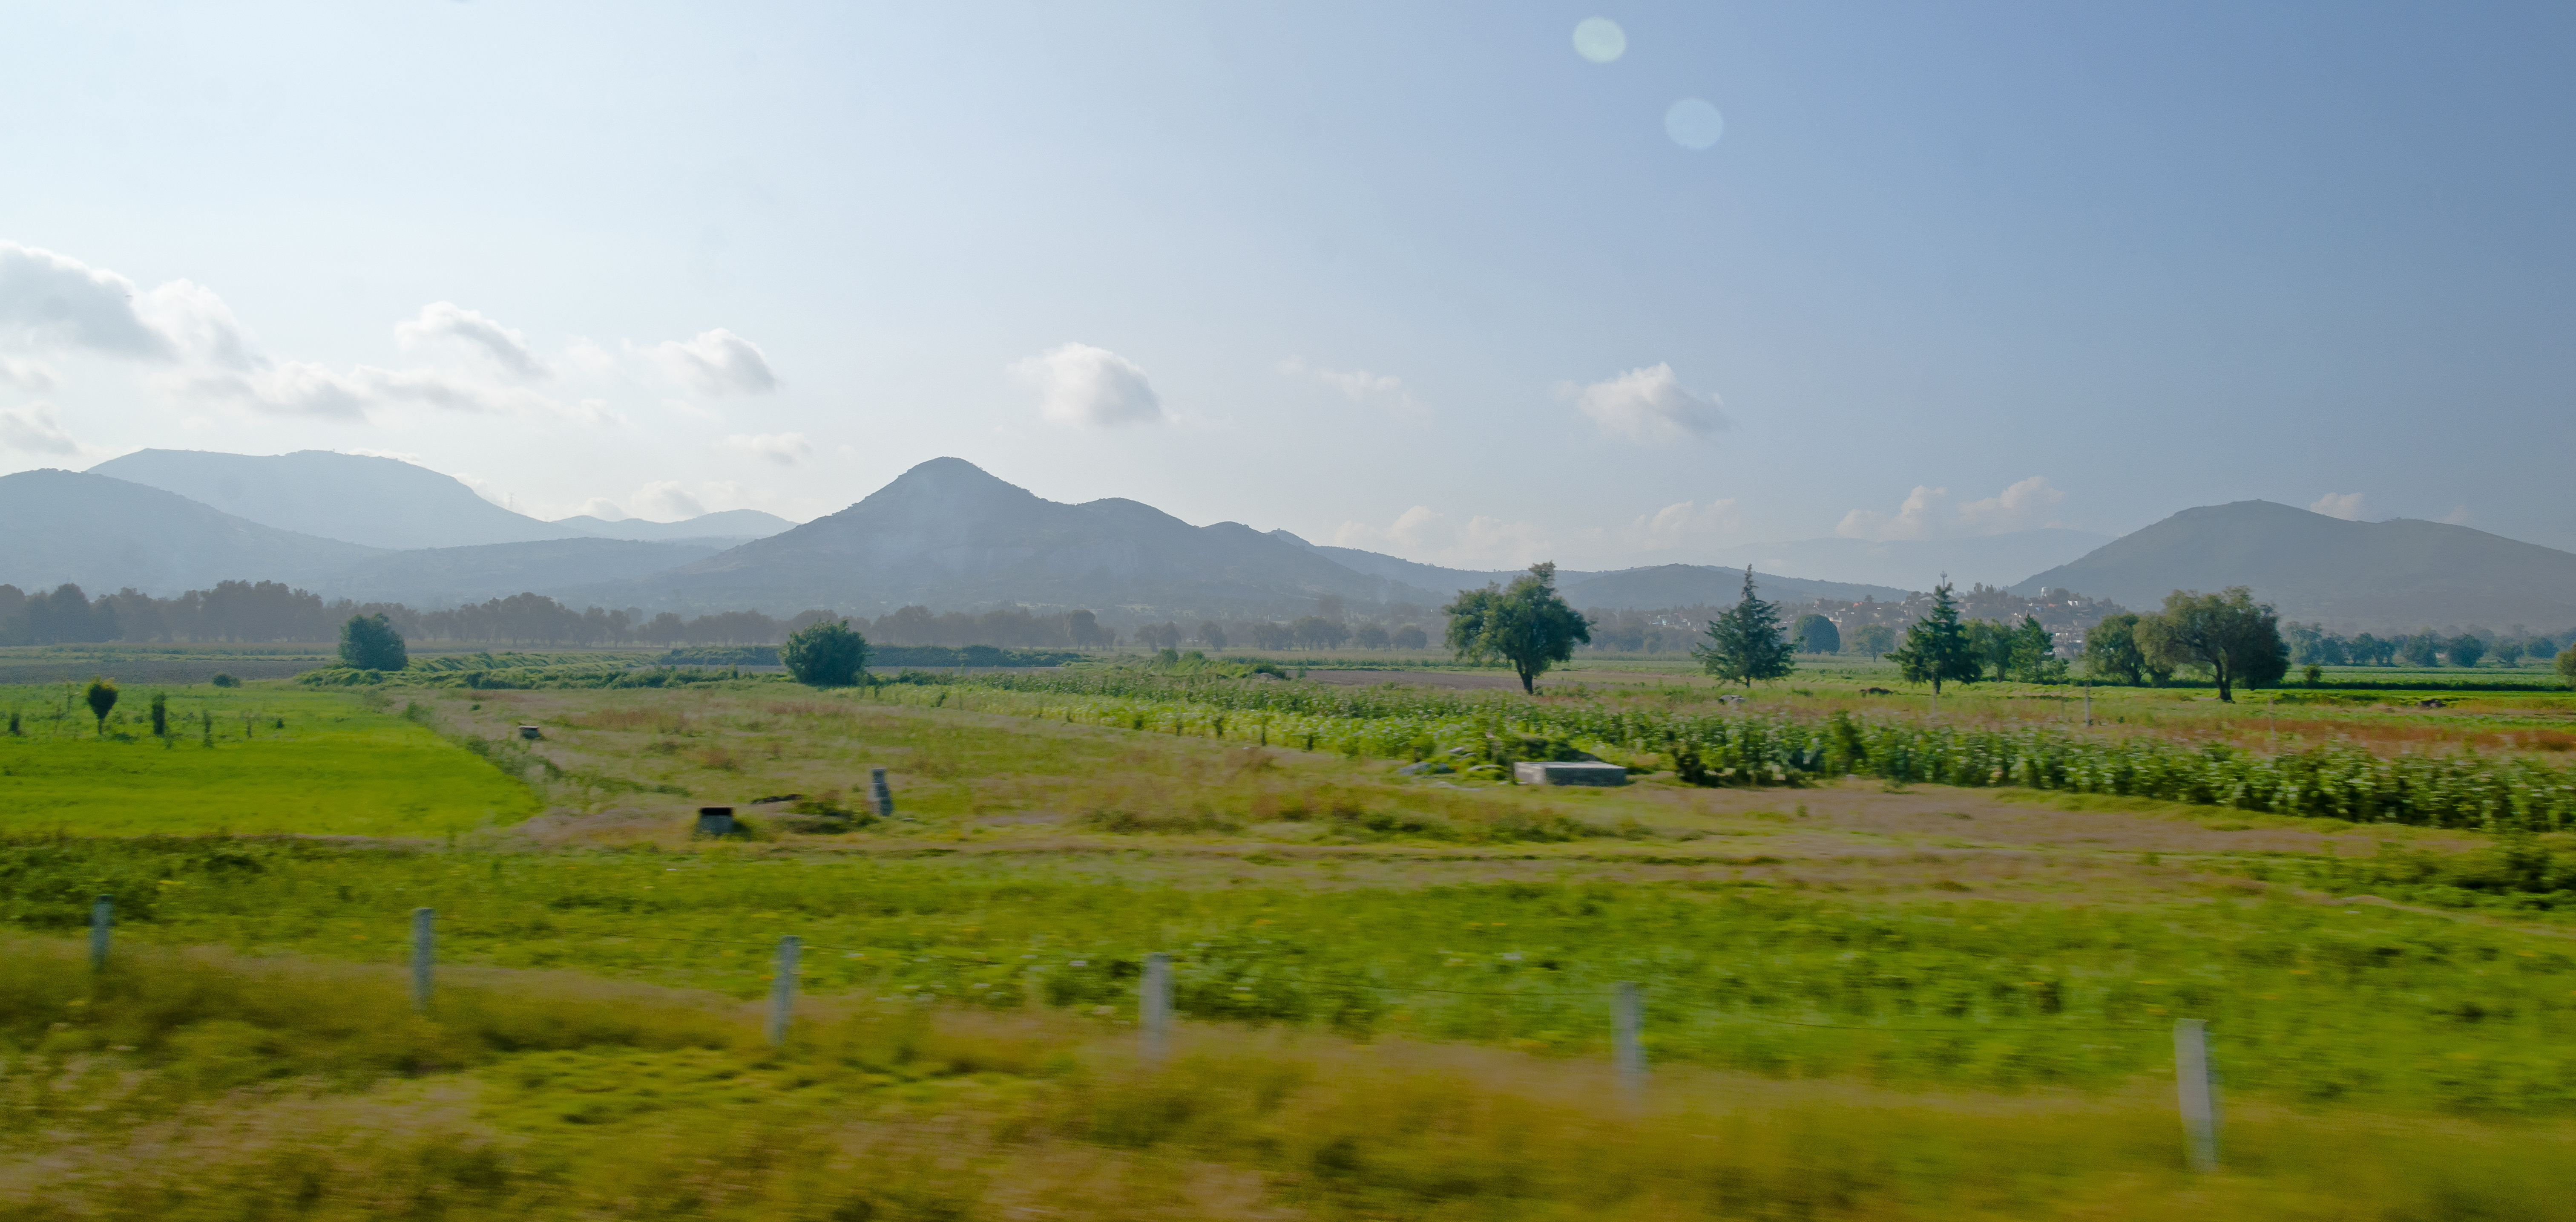 File:Mexican landscape from bus north of Mexico City.jpg ...